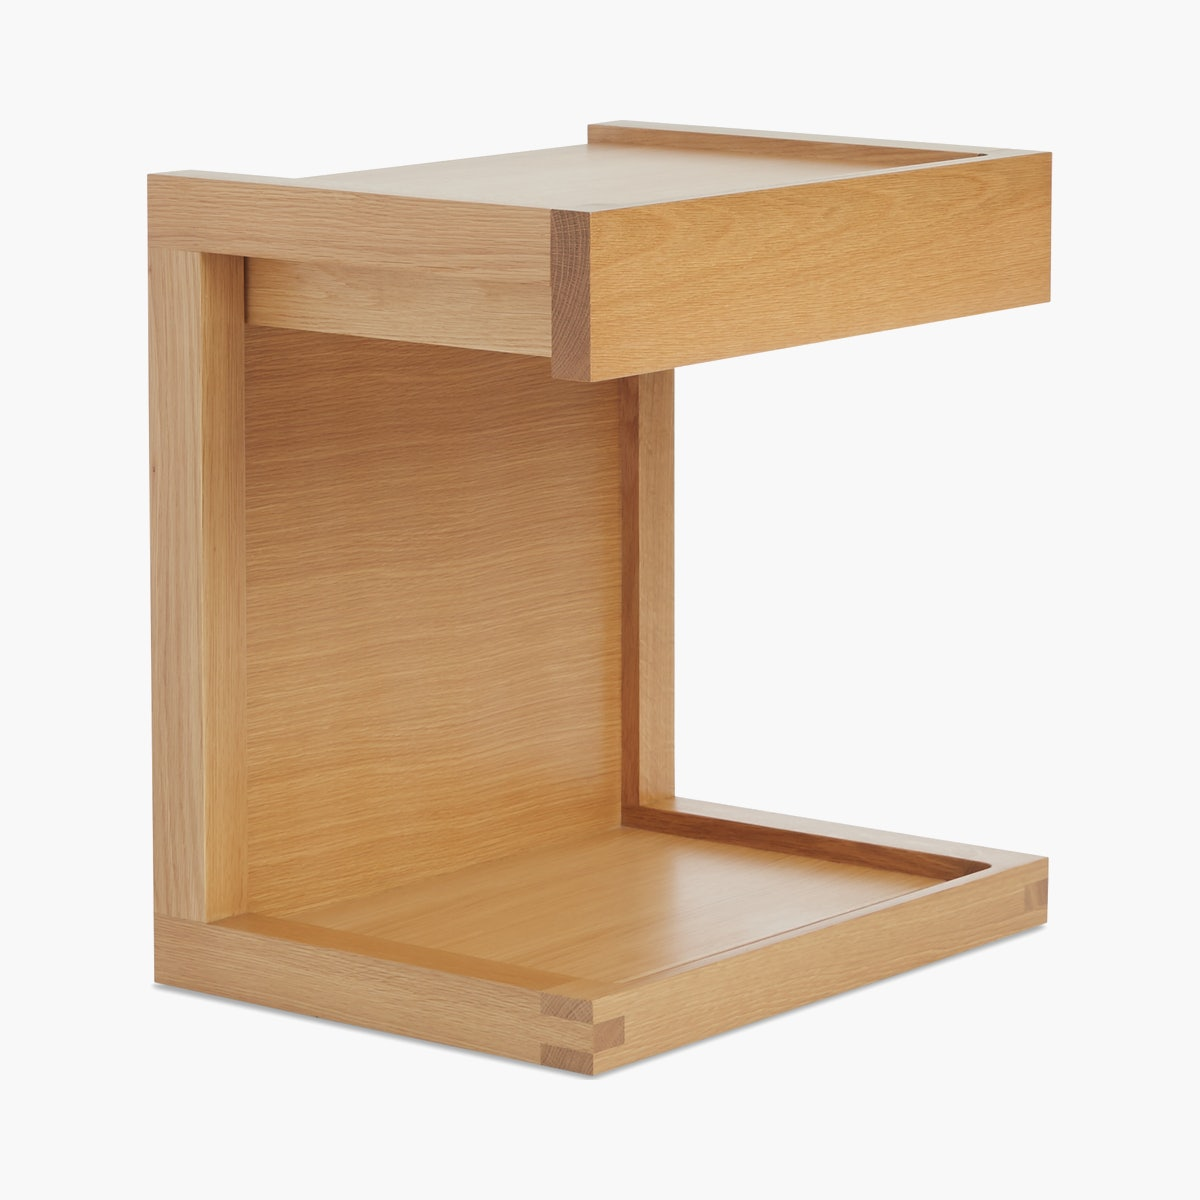 Matera Bedside Table, with Drawer